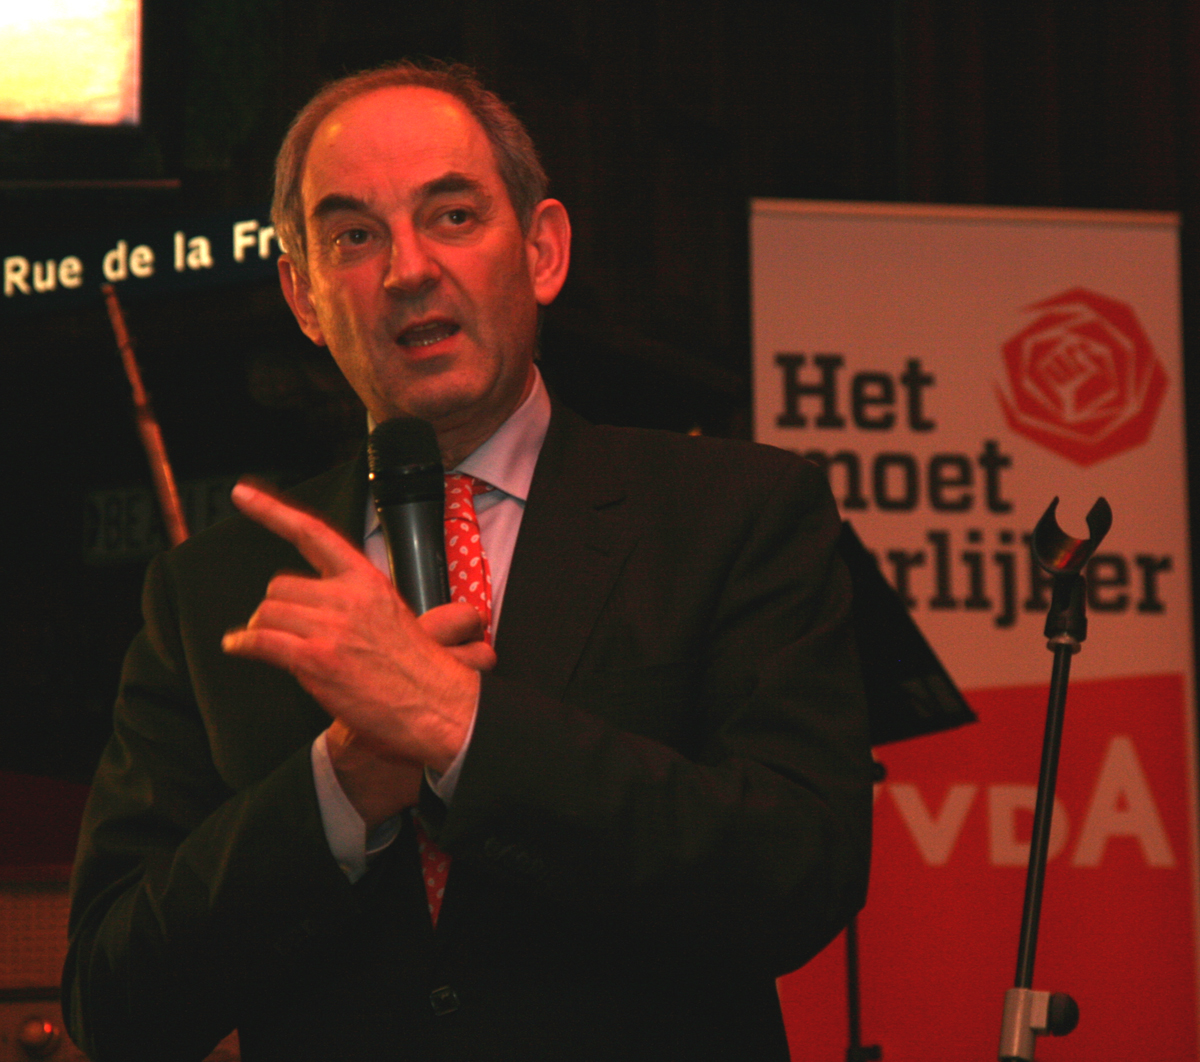 Job Cohen in Venlo (Foto: PvdA)